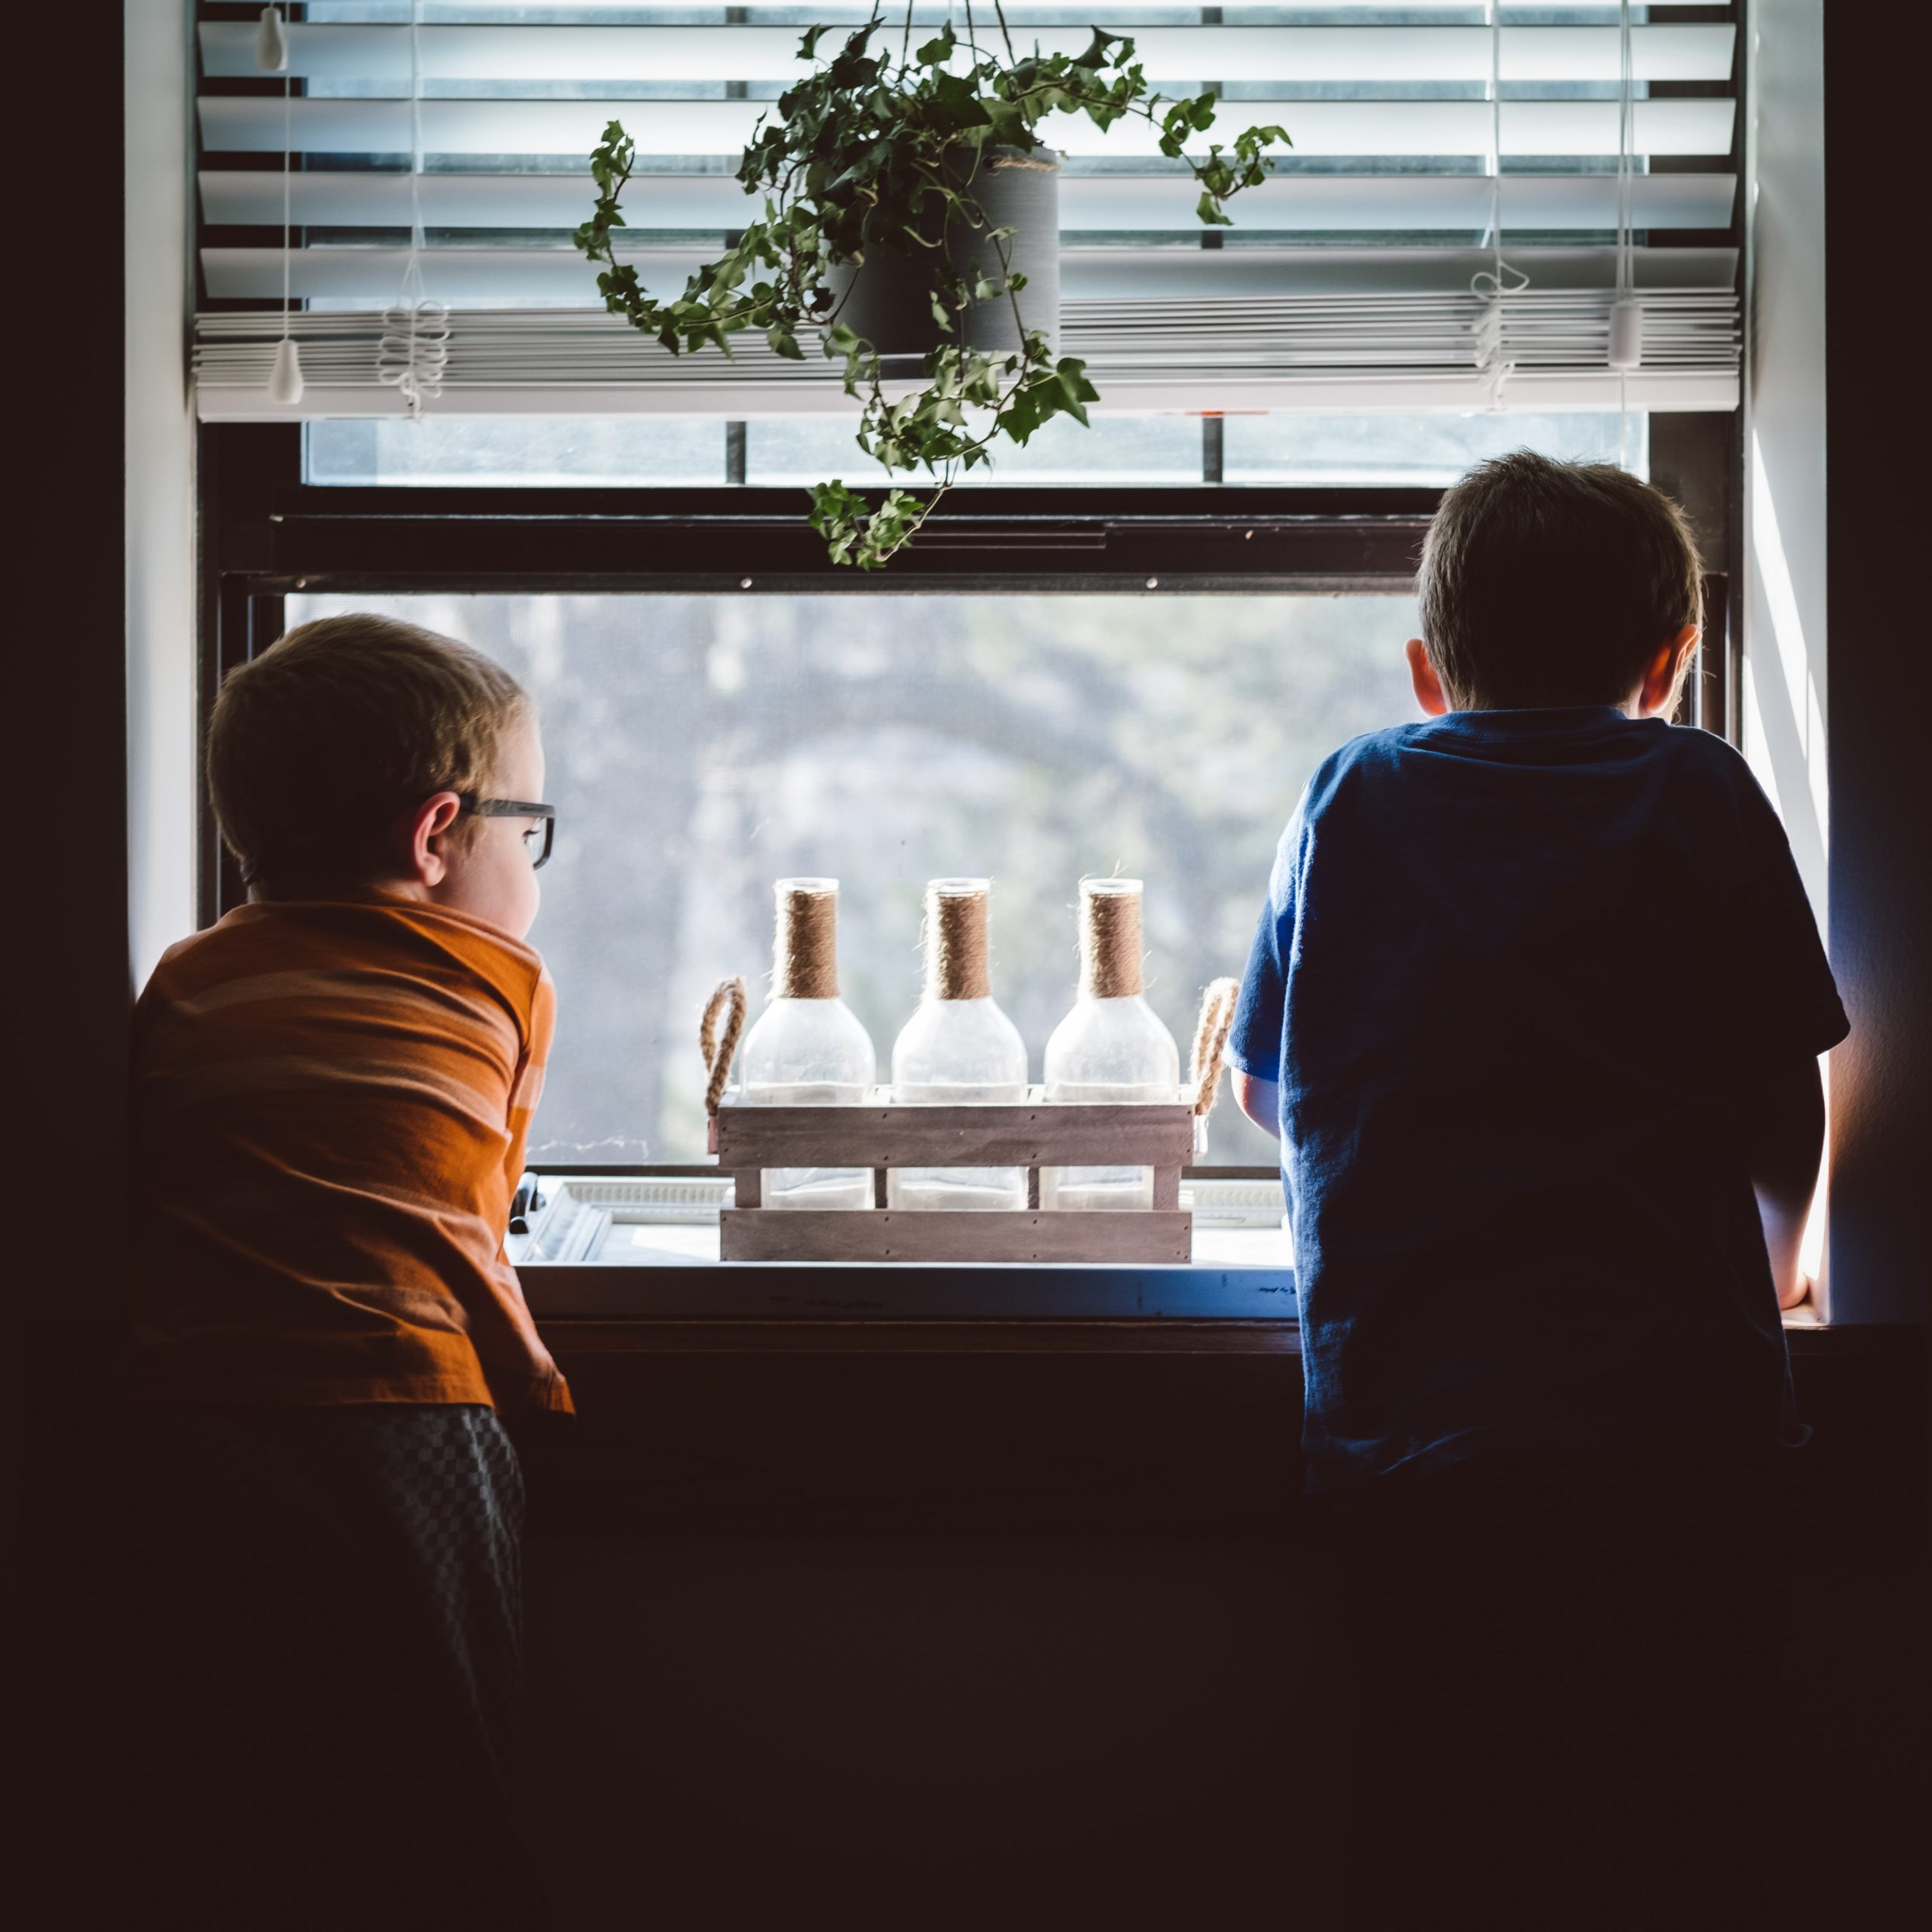 Two boys look out a window (Photo by Andrew Seaman on Unsplash)